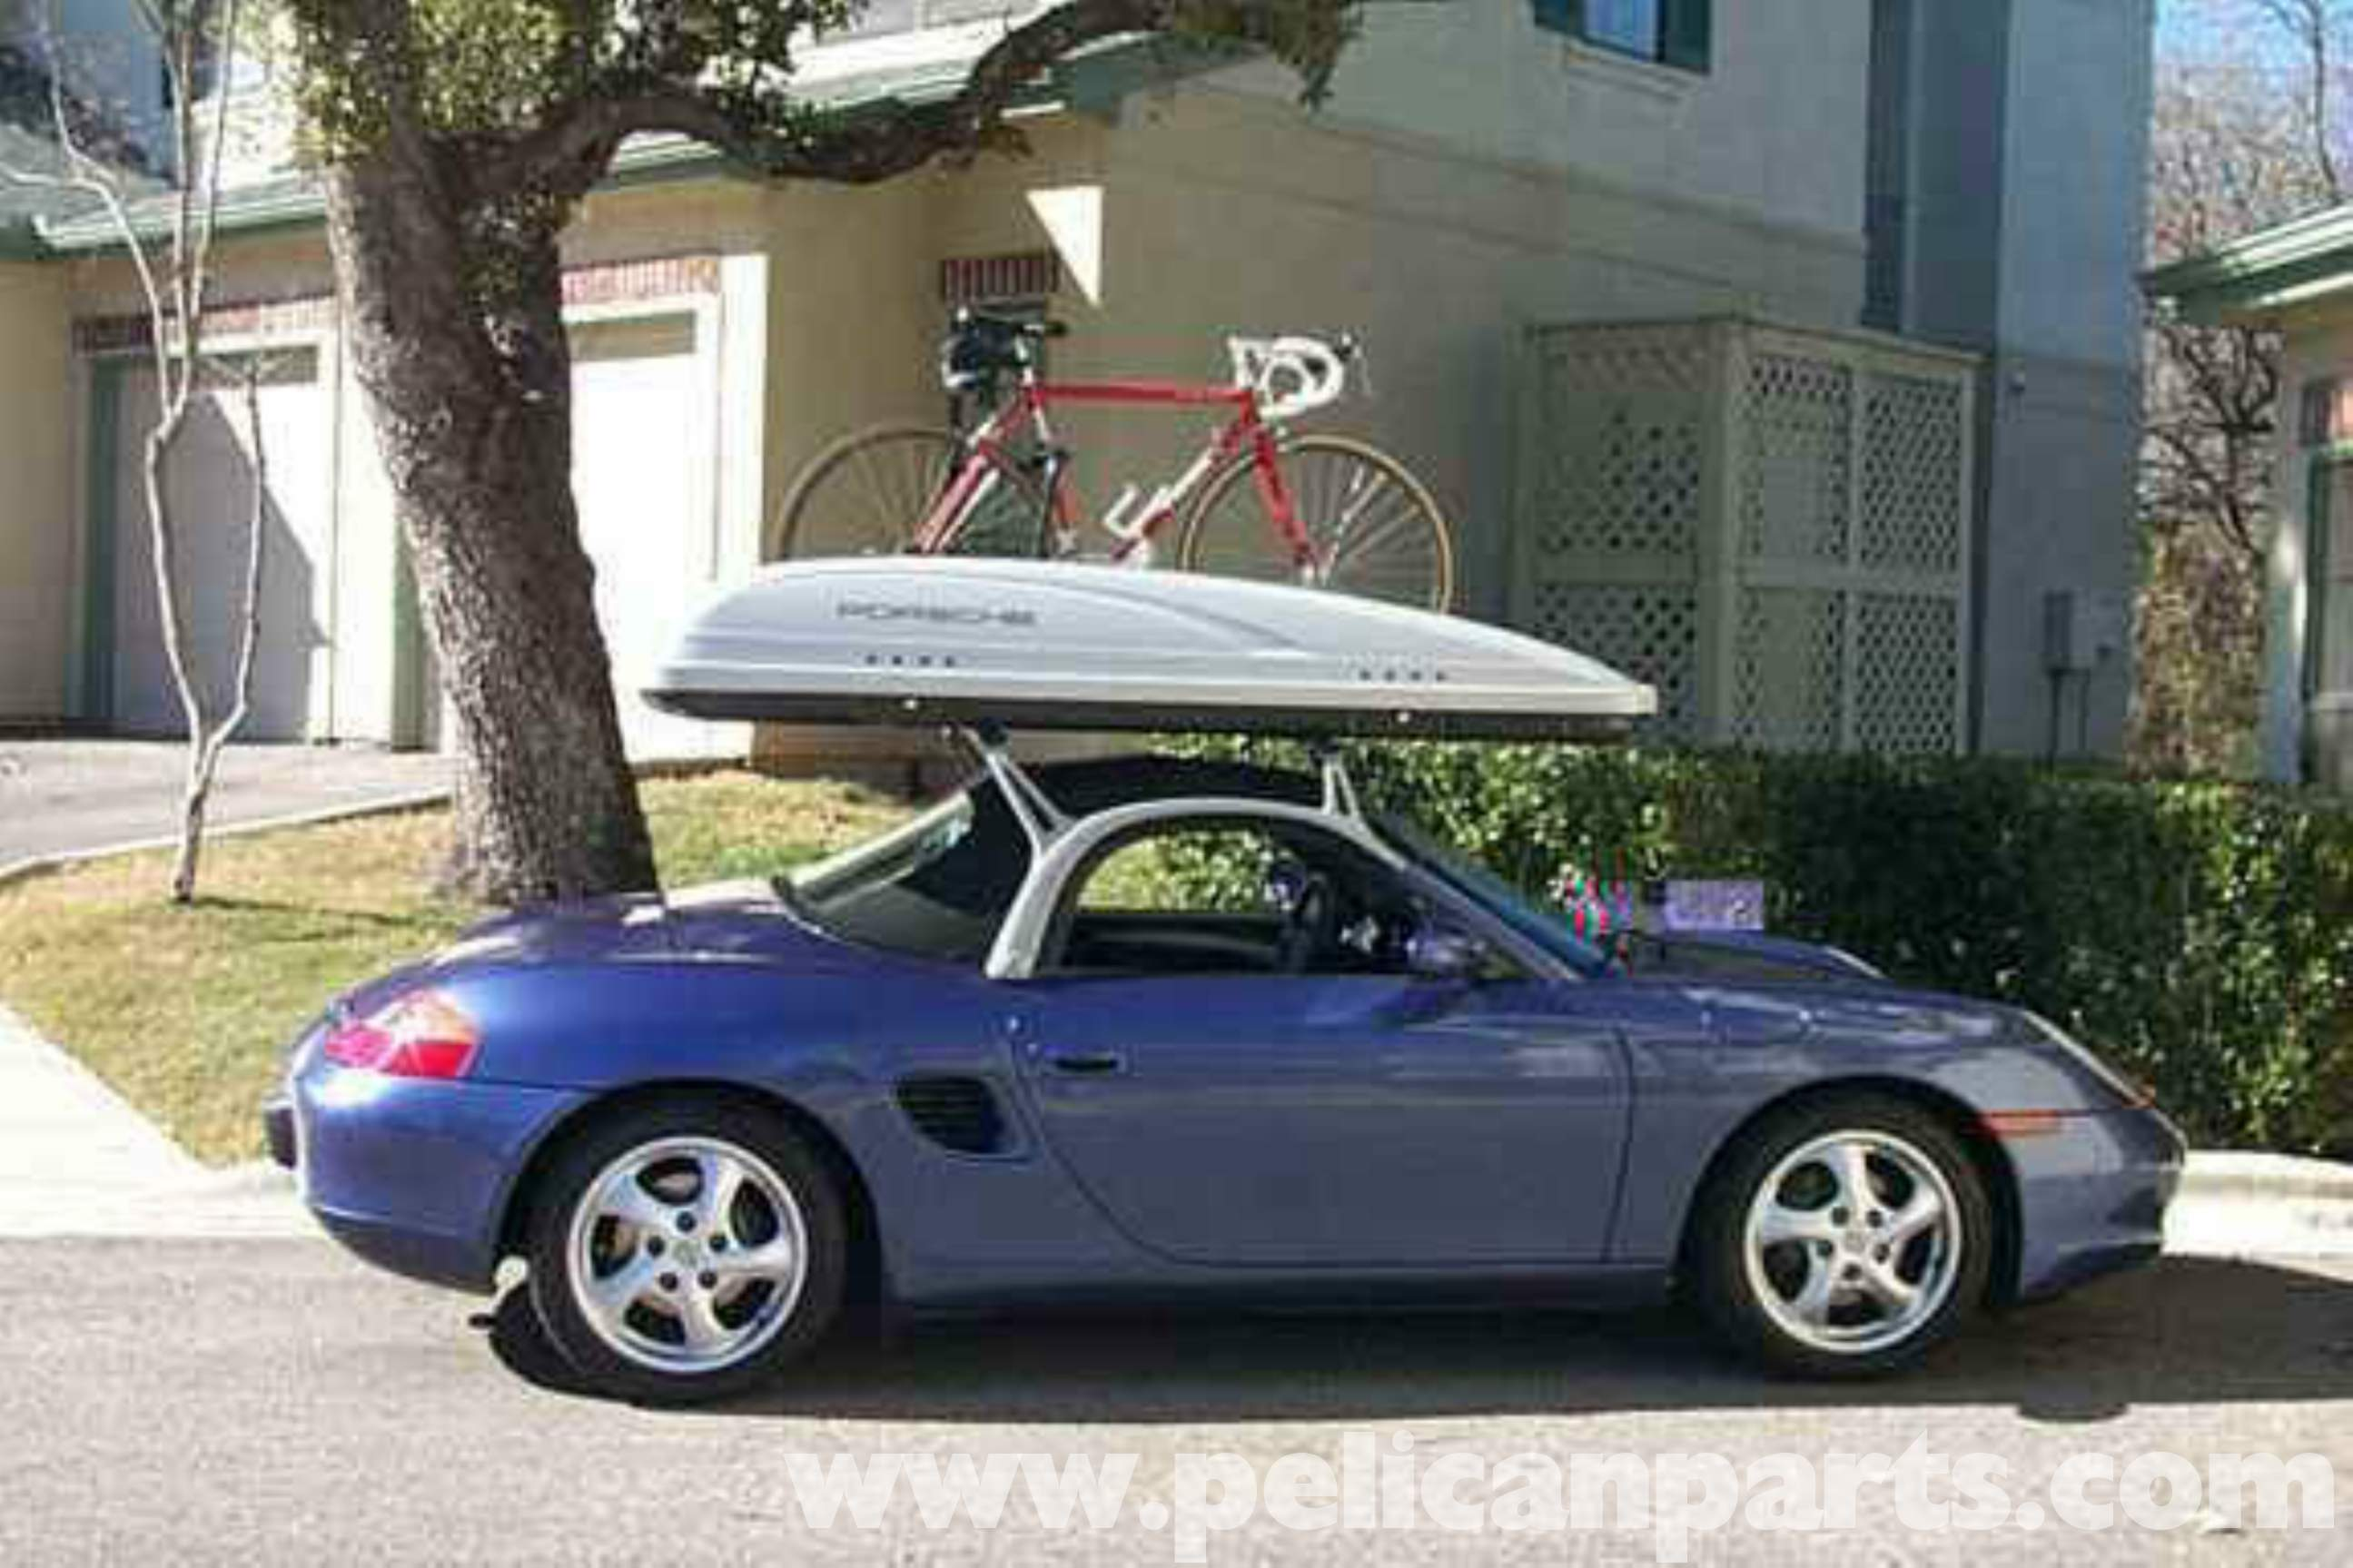 Porsche Boxster Roof Rack System Roof Transport System